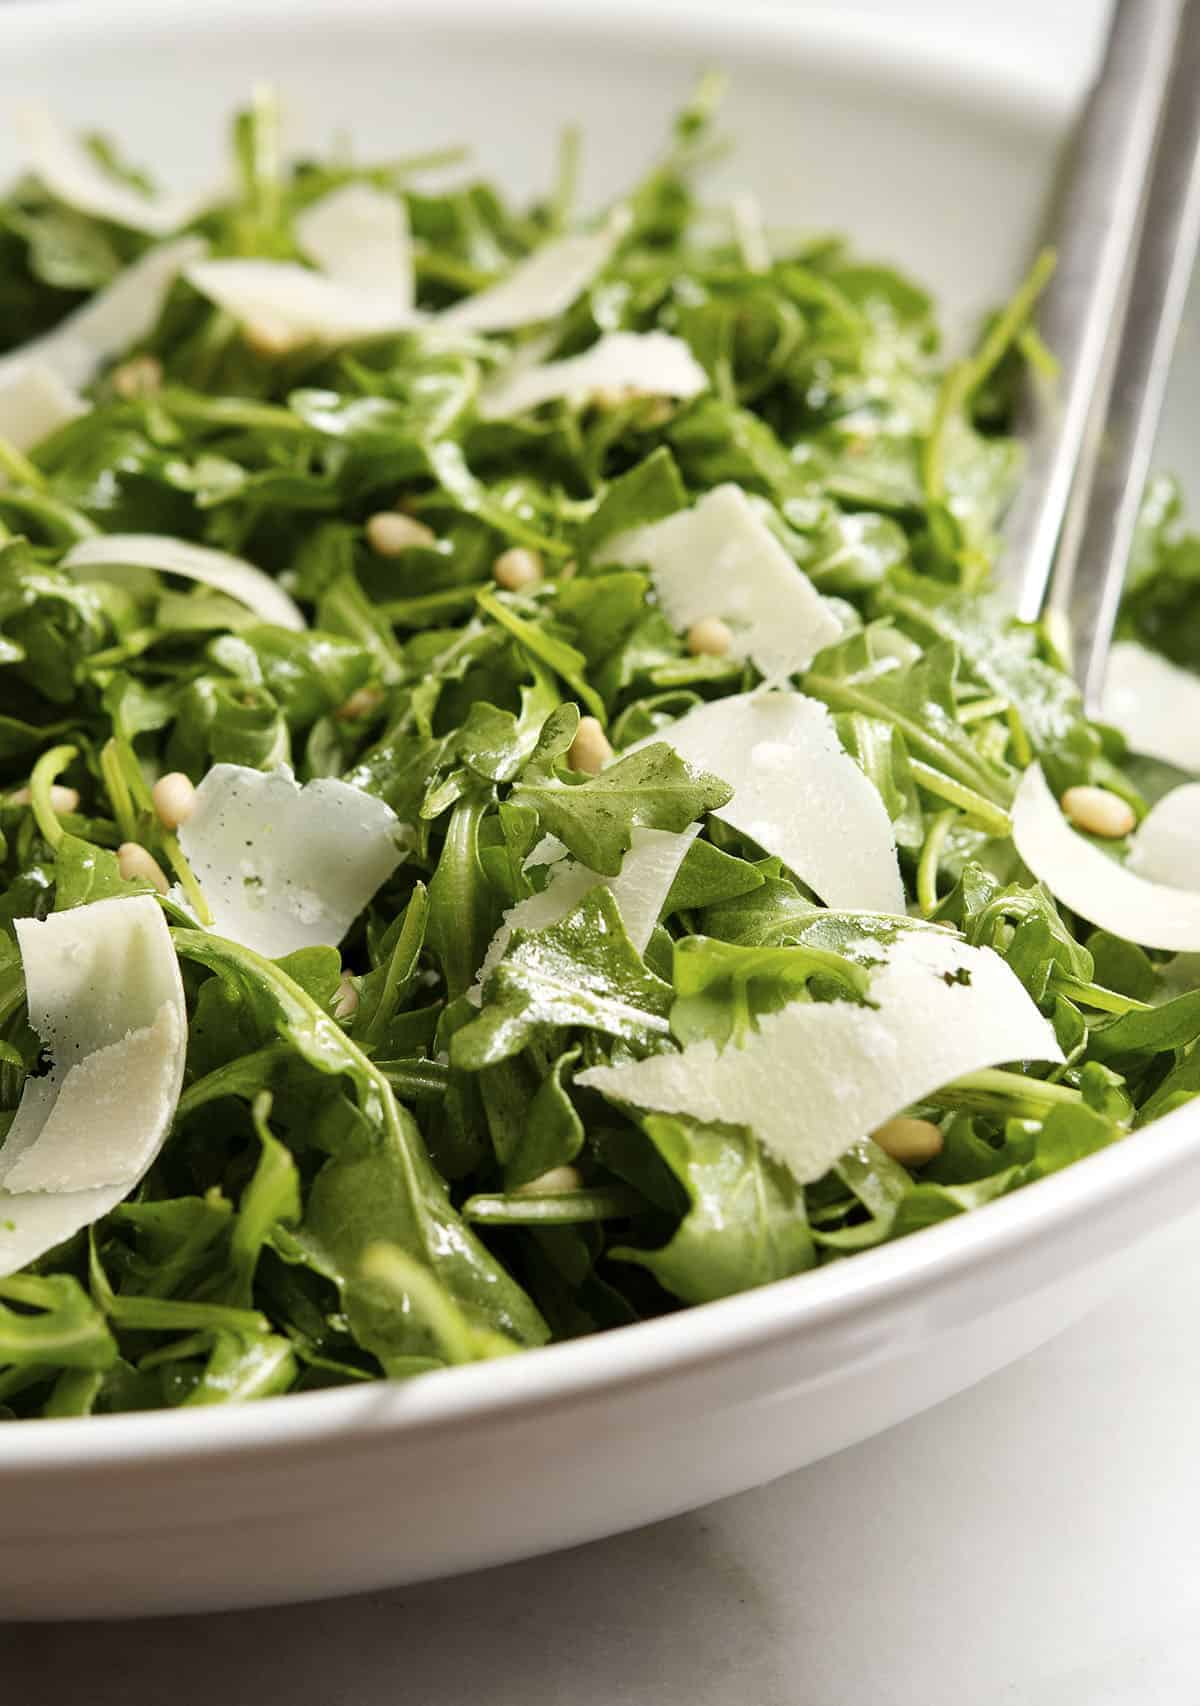 arugula salad in a white bowl